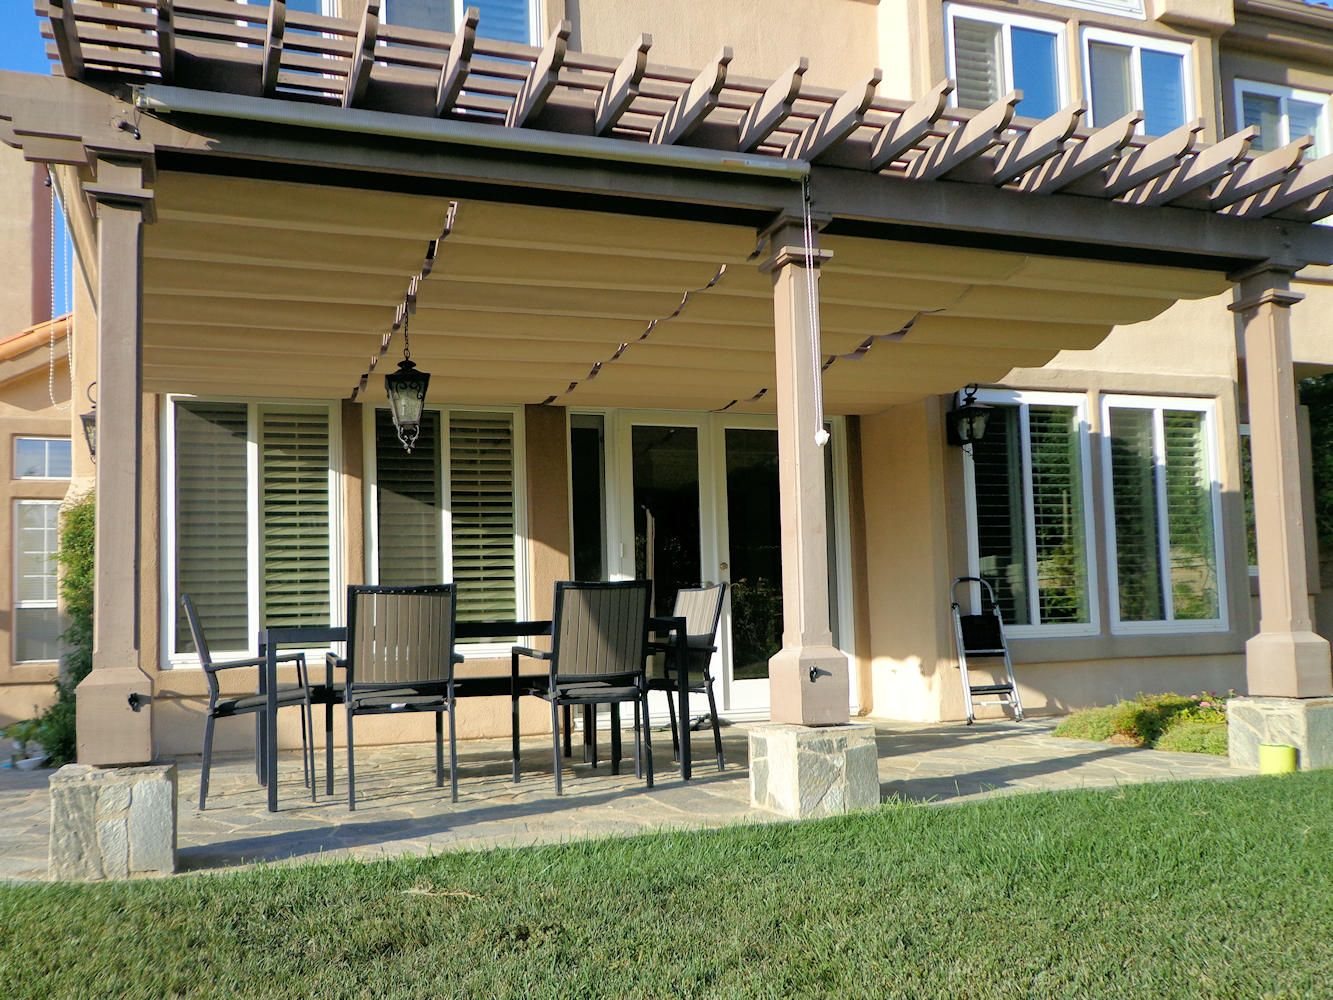 Slide Wire Cable Awnings | Superior Awning - Part 2 ...